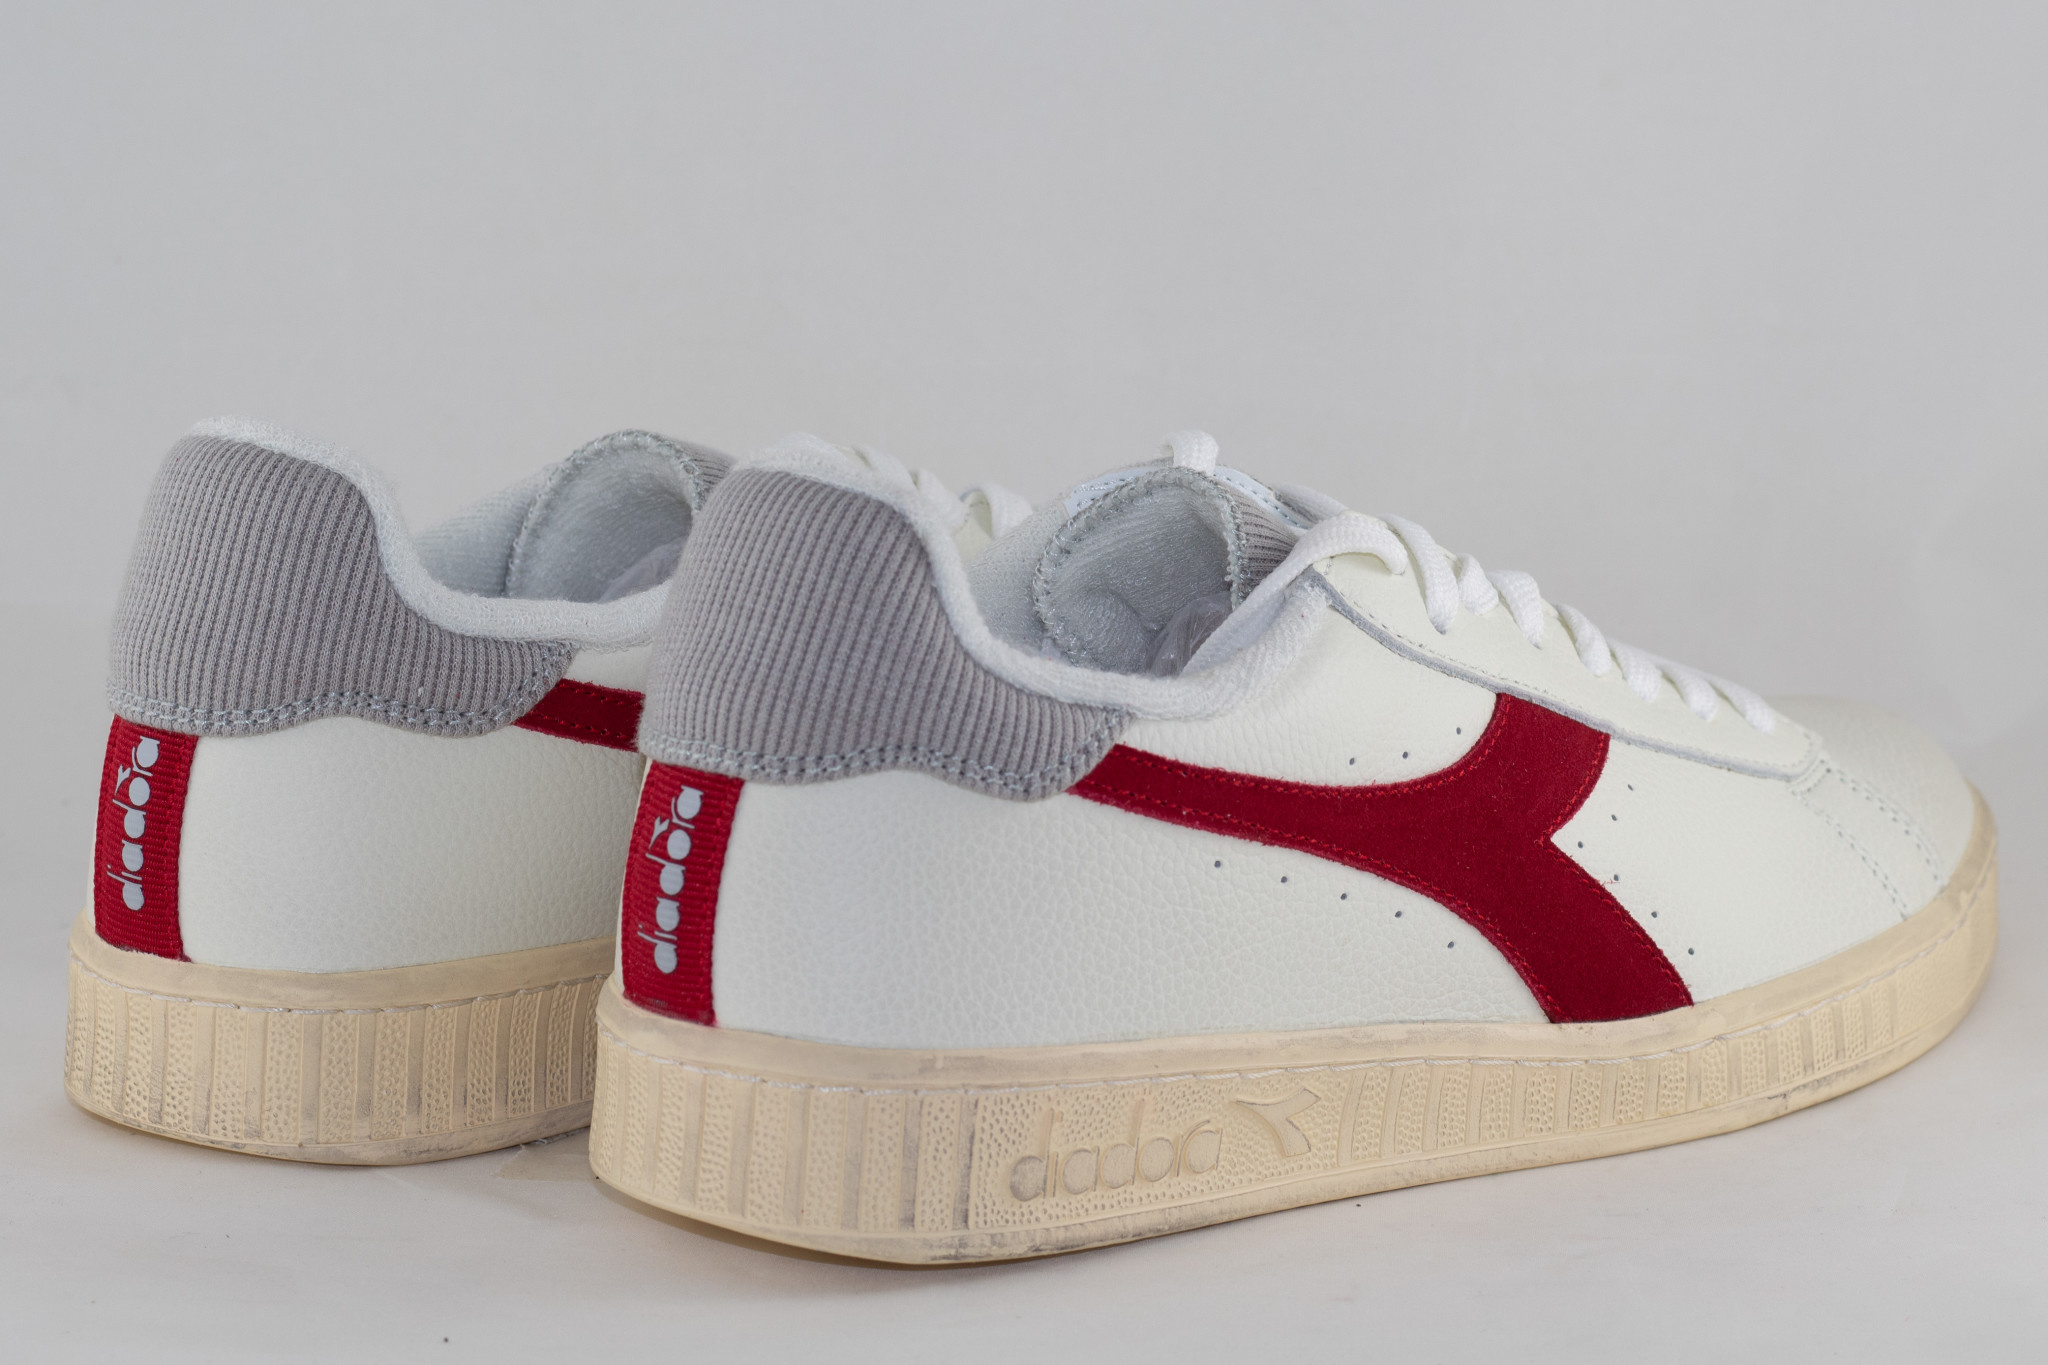 DIADORA GAME L LOW USED White/ Tango Red